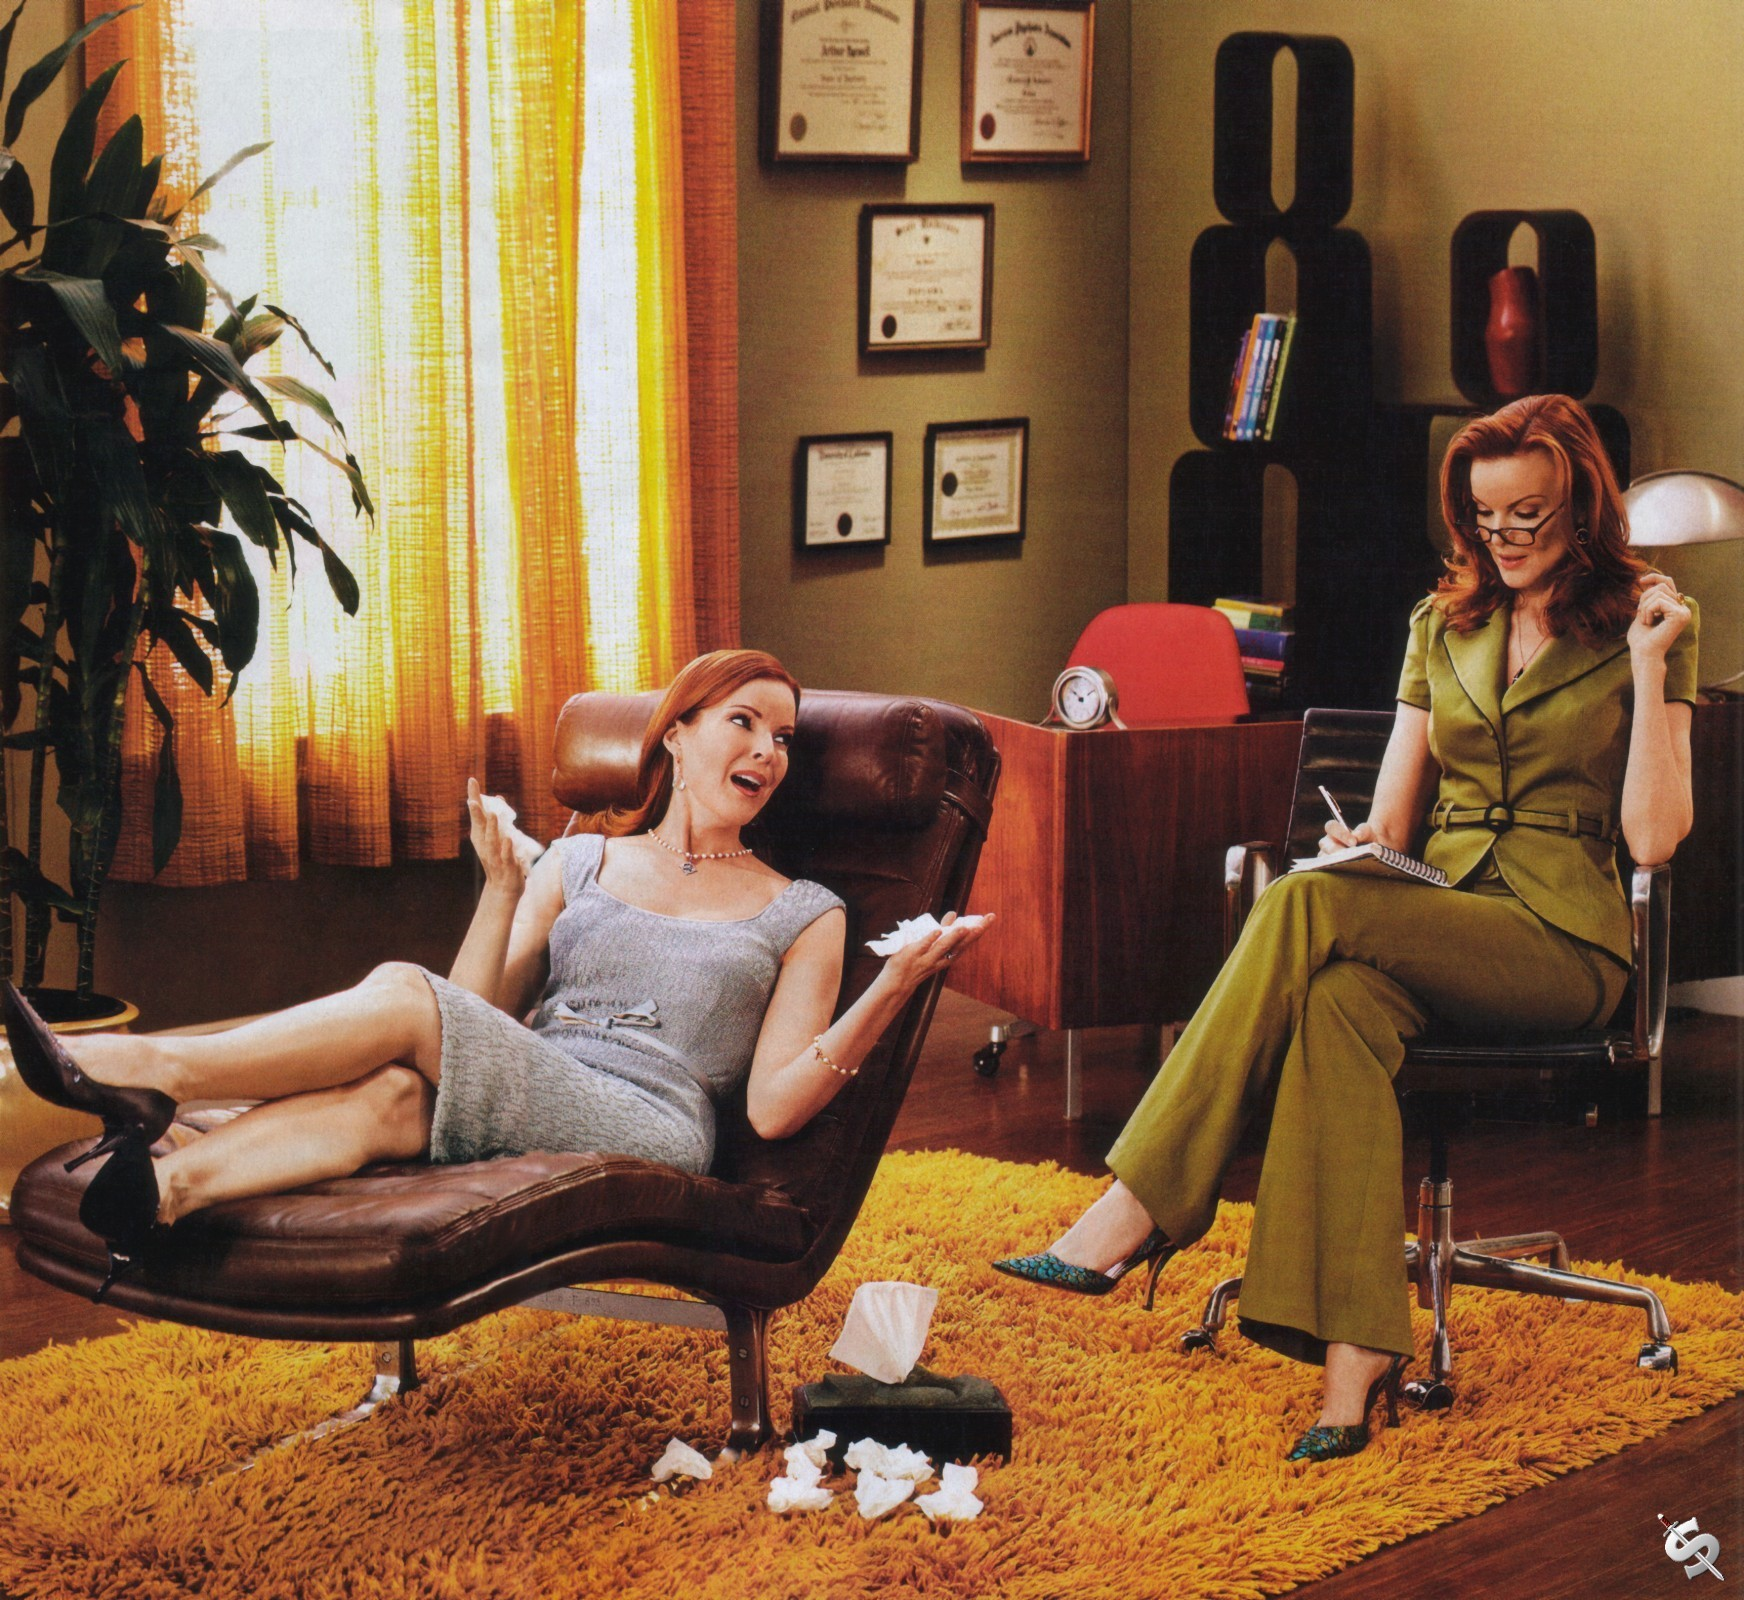 http://images2.fanpop.com/image/photos/9100000/Bree-van-de-kamp-desperate-housewives-9199495-1744-1600.jpg